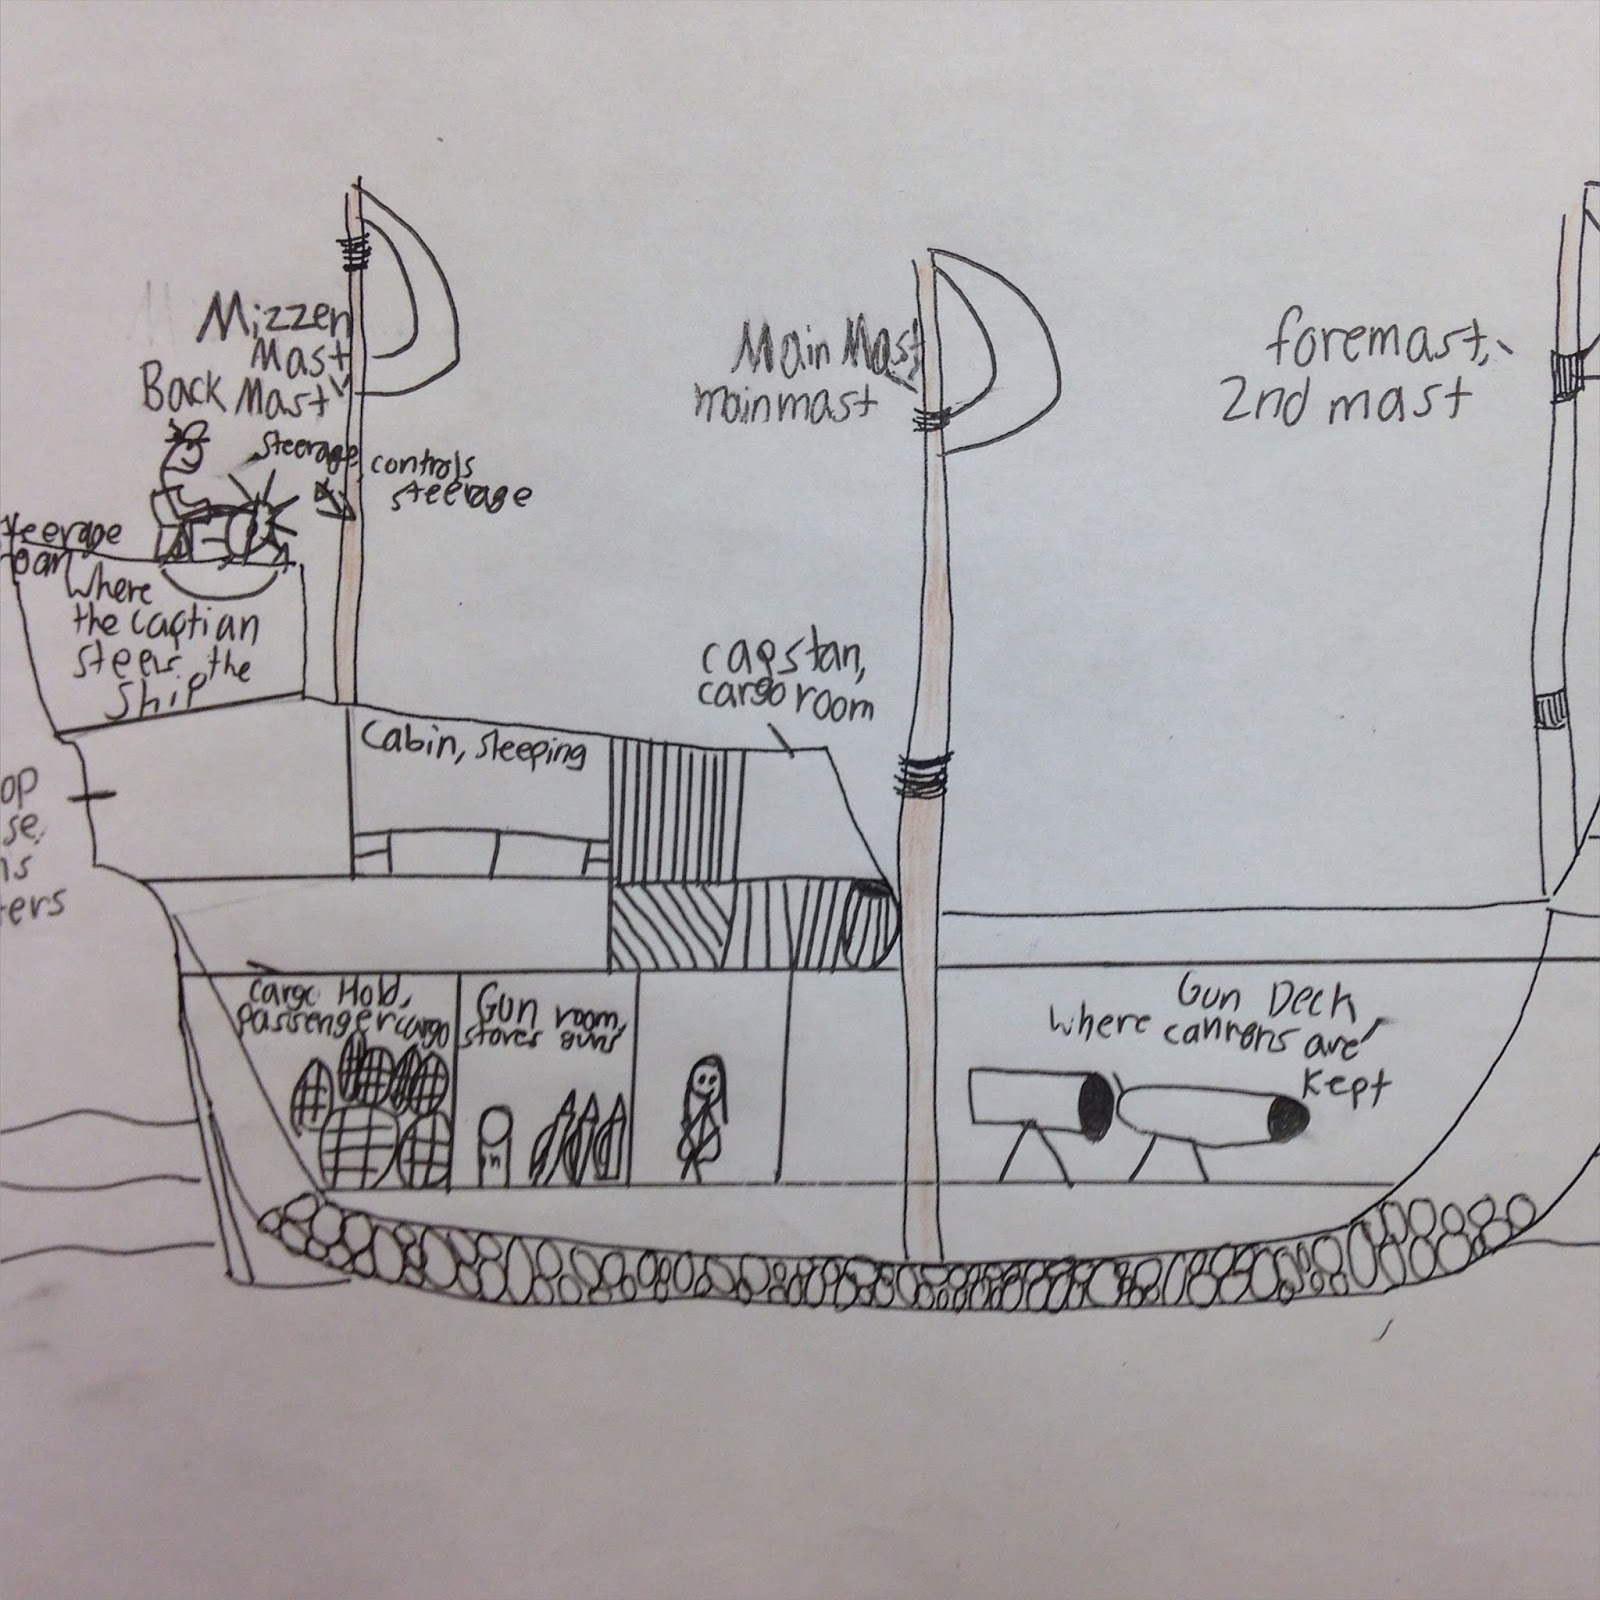 medium resolution of  creating cutaway mayflower diagrams with 14 main ship parts labeled we defined the ship parts first and then searched mayflower diagrams and pictures